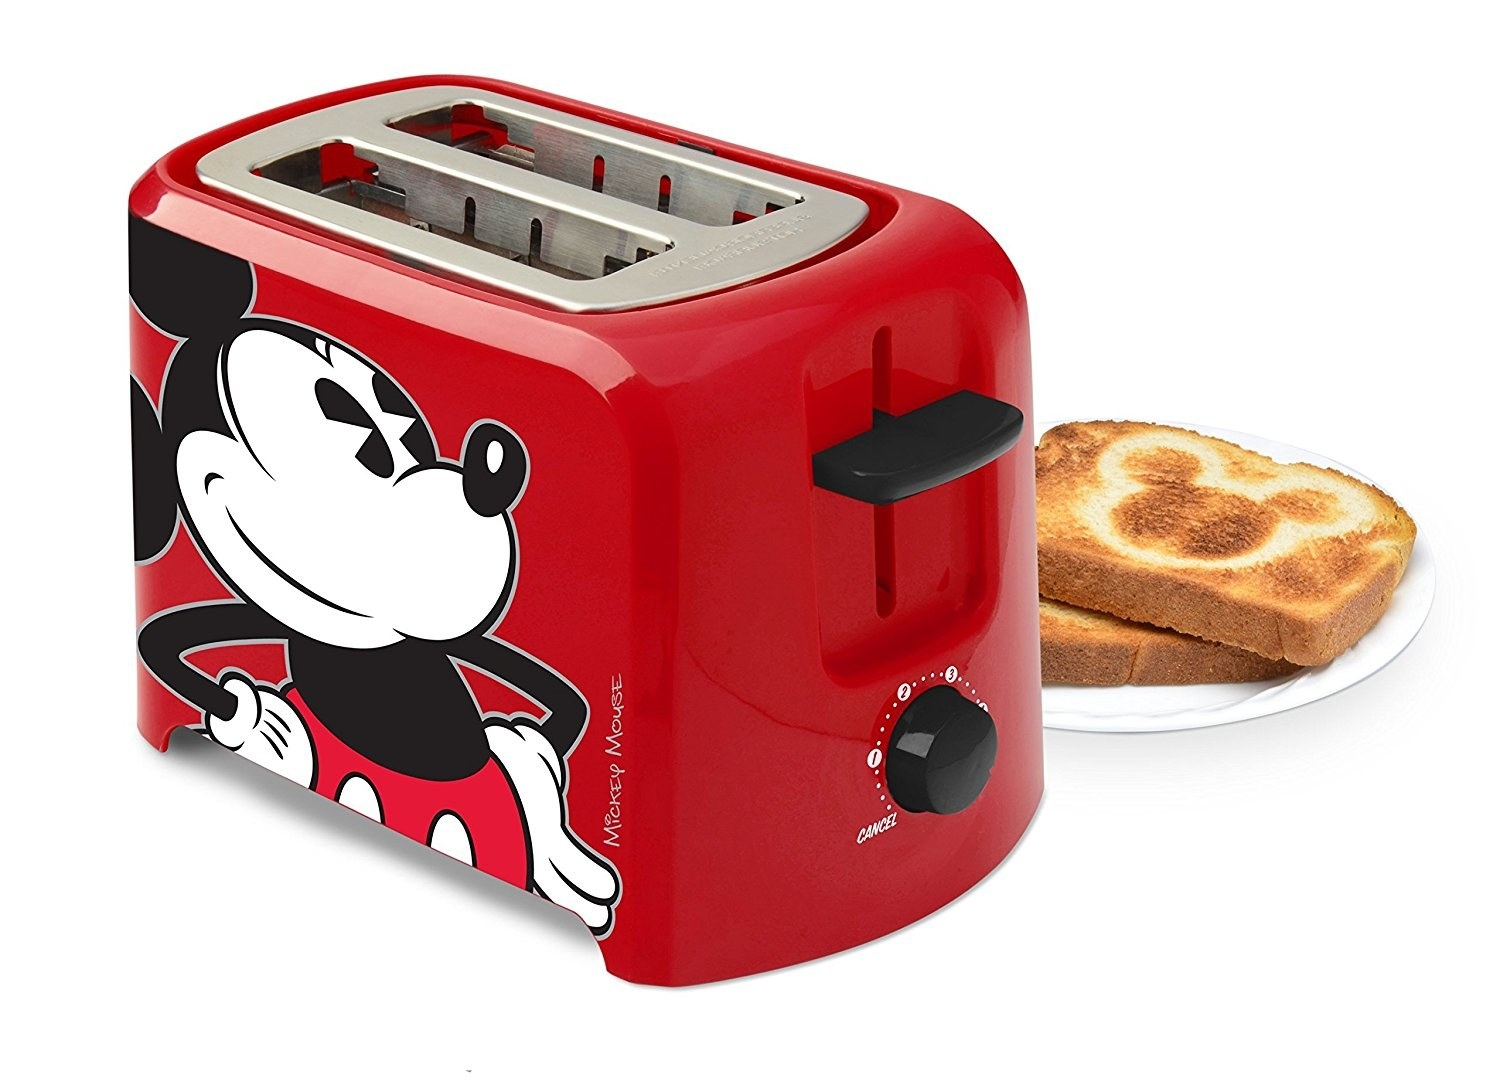 toaster with mickey on it that spits out toast with the classic mickey symbol toasted on it